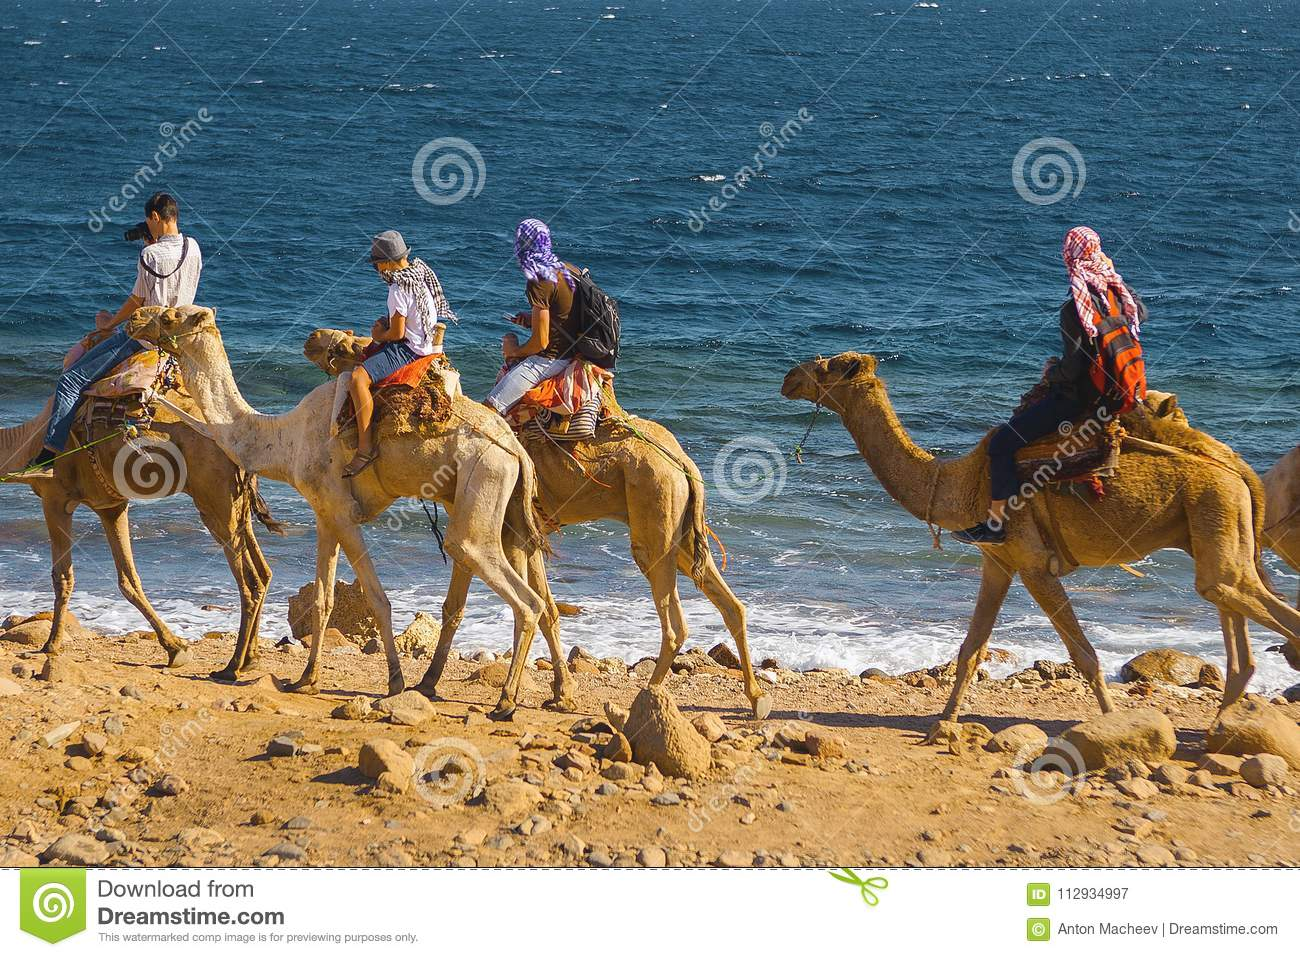 Tourists on camels in Egypt